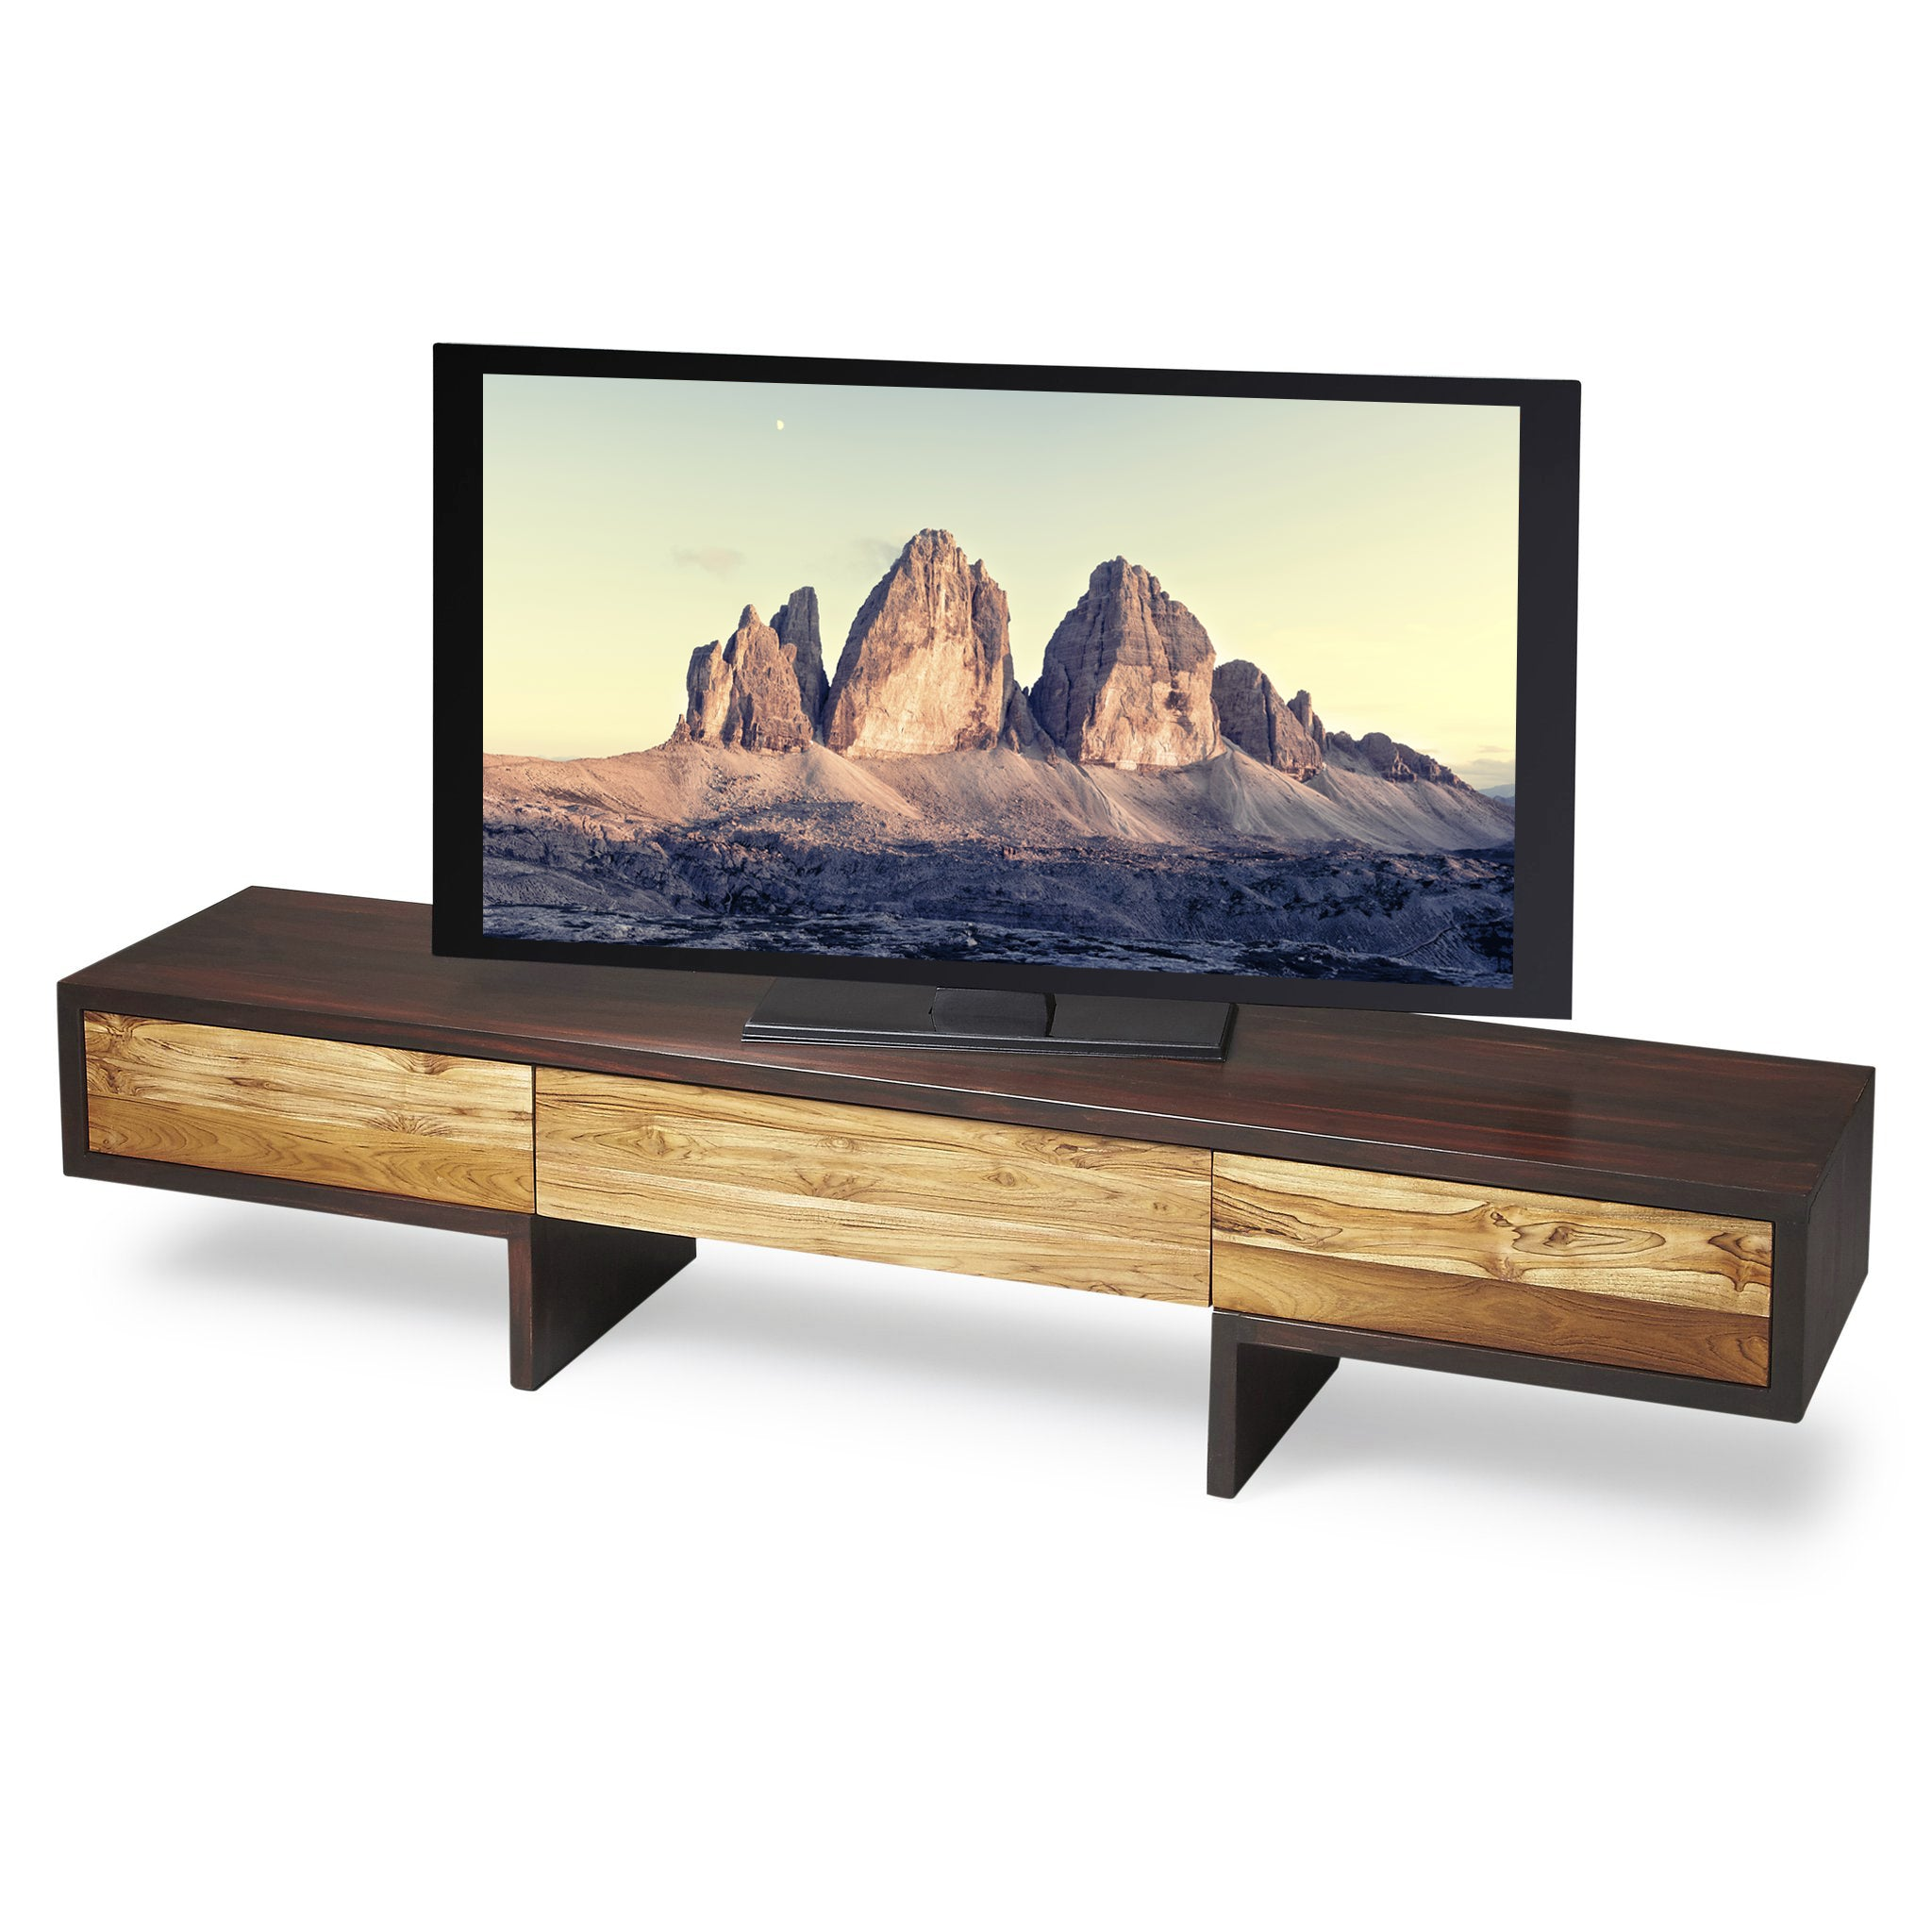 Modern Low Profile TV Stand Recycled Reclaimed Wood Console